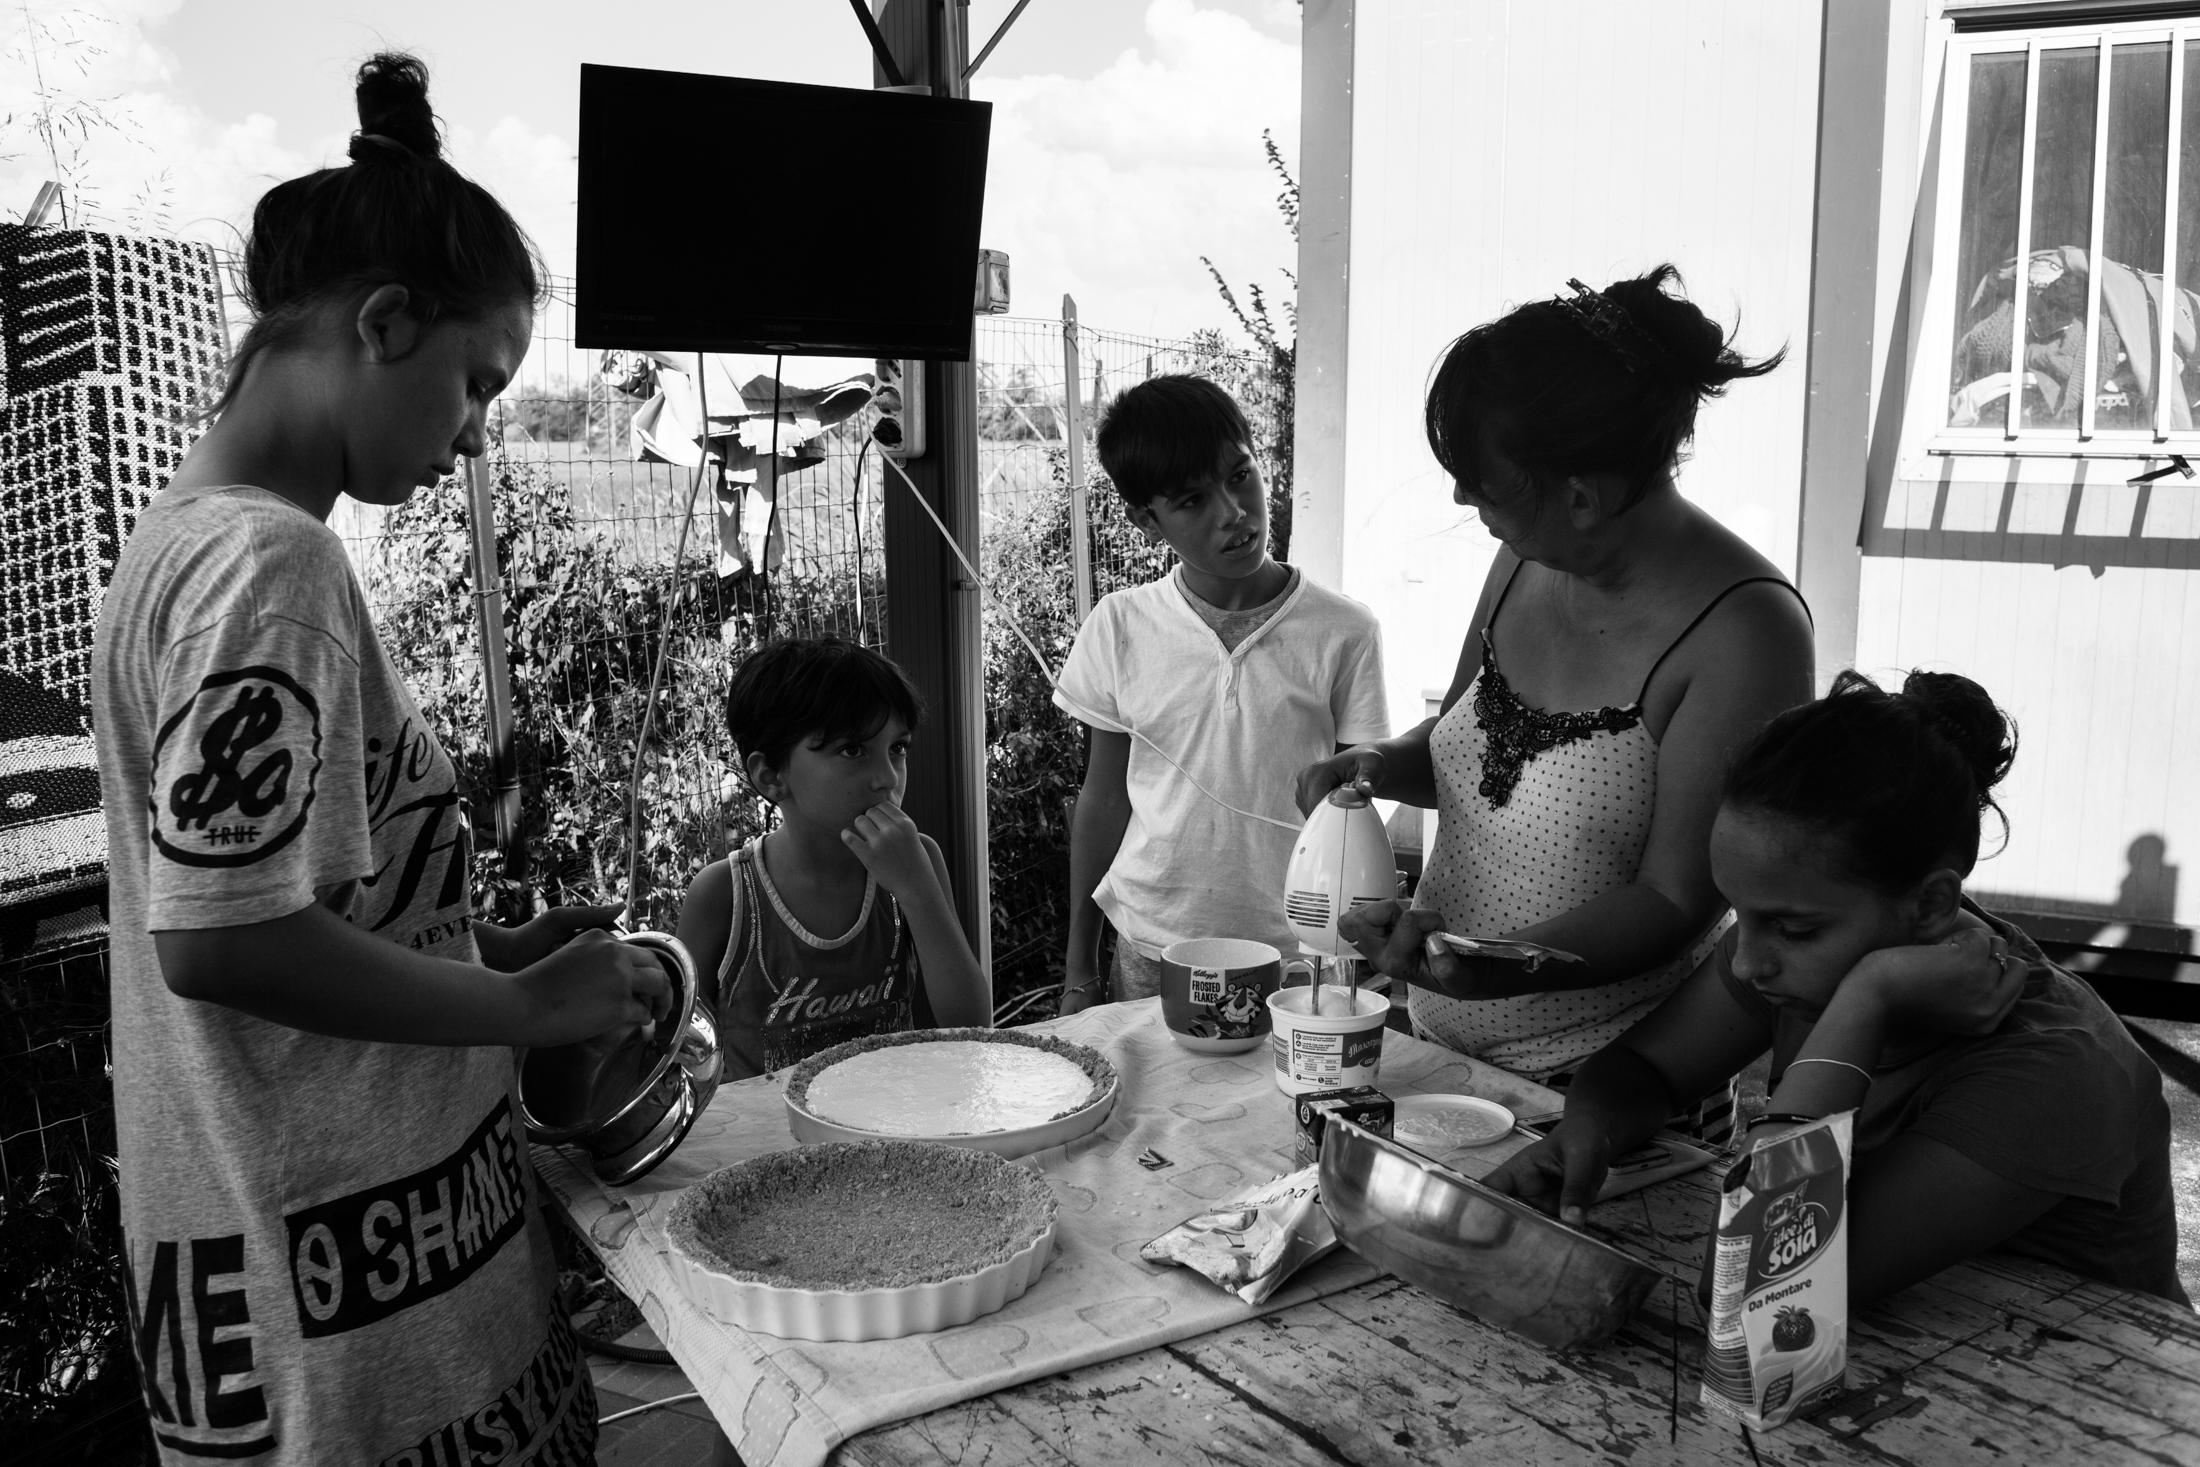 August 2017, nomad camp of Castelnuovo Rangone, Emilia Romagna, Italy. Linda prepares two cakes with the help of Vicki, her daughter and her grandchildren, in front of her mobile home. She will bring the cakes to a nomad camp not too far away, where she has been invited to dinner by some of her relatives.